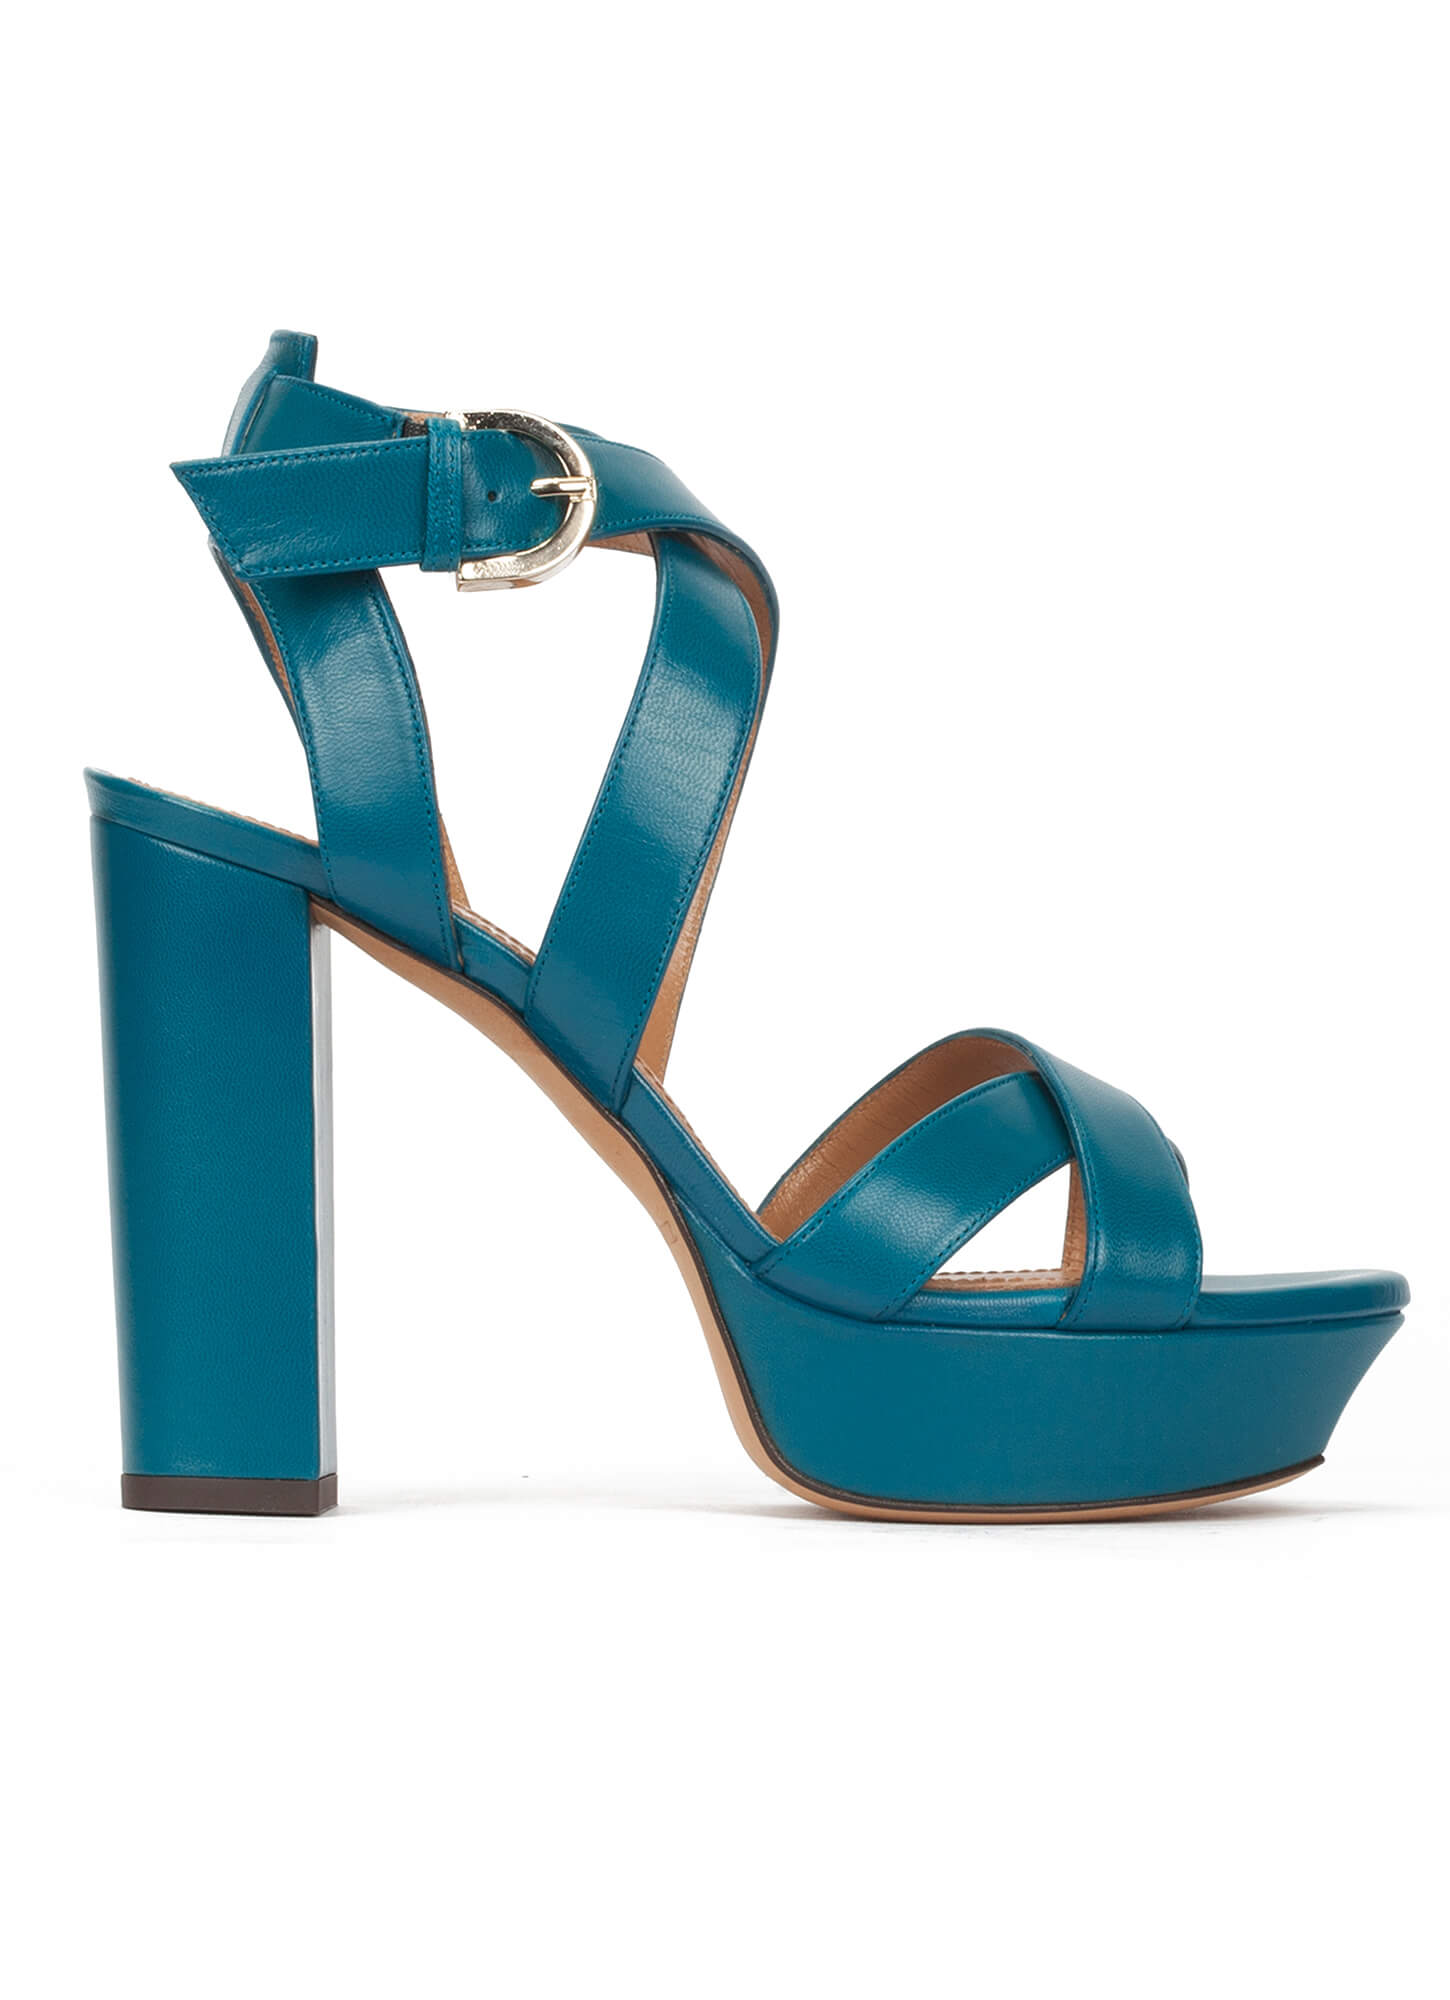 893864cce833e9 Strappy platform high block heel sandals in blue leather . PURA LOPEZ